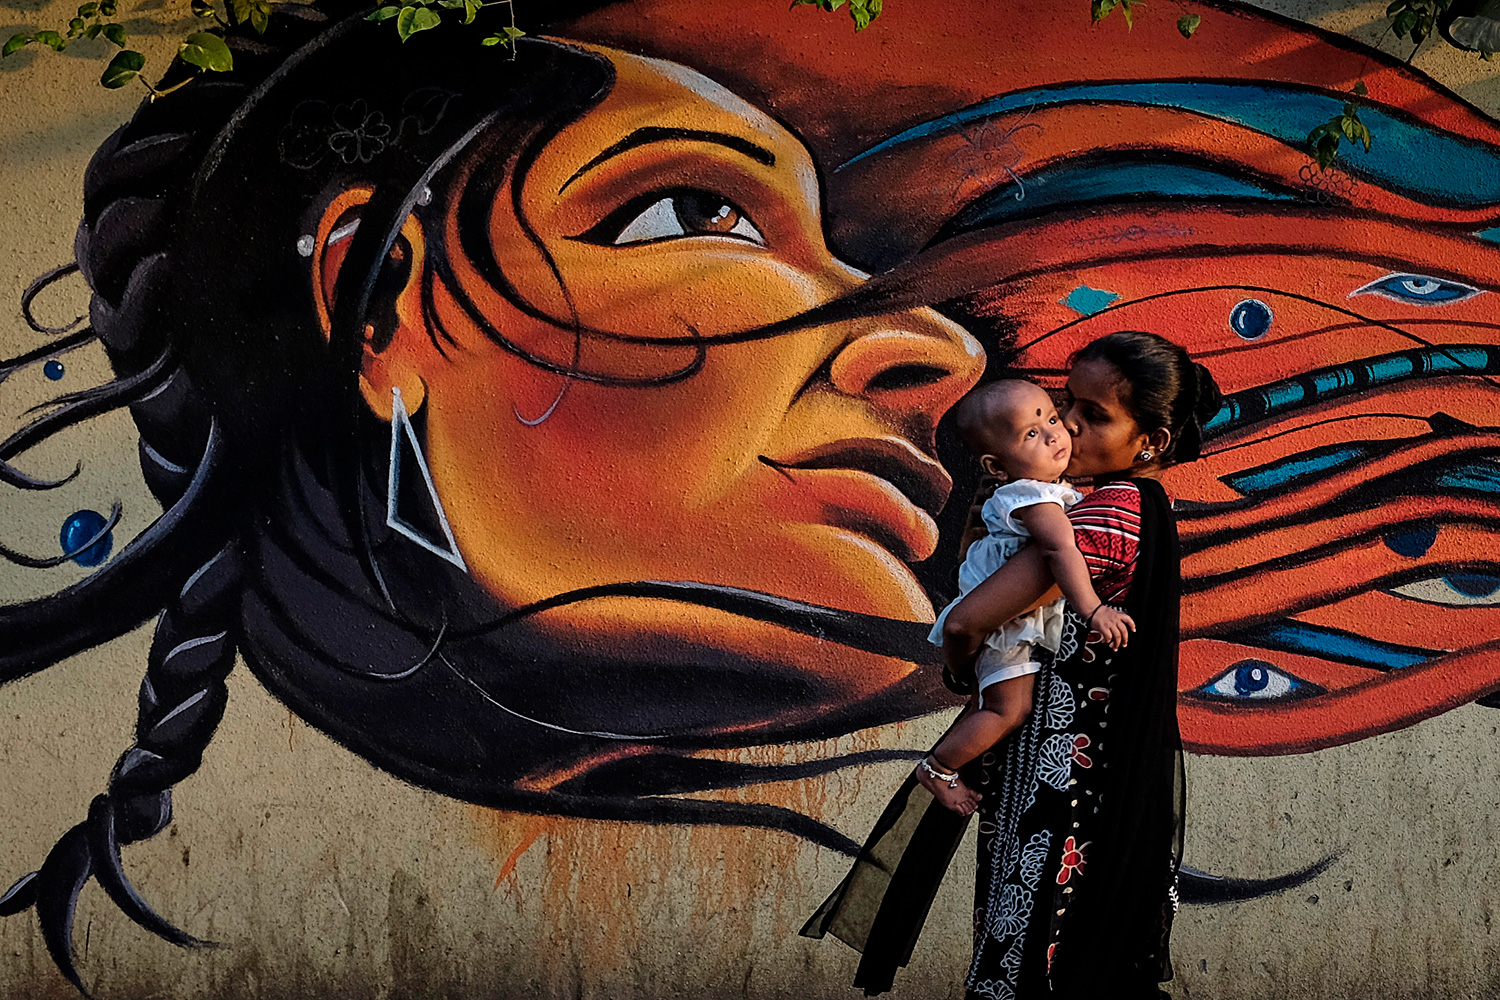 The image is striking with a large, artistic image behind a woman who is walking and holding a child.